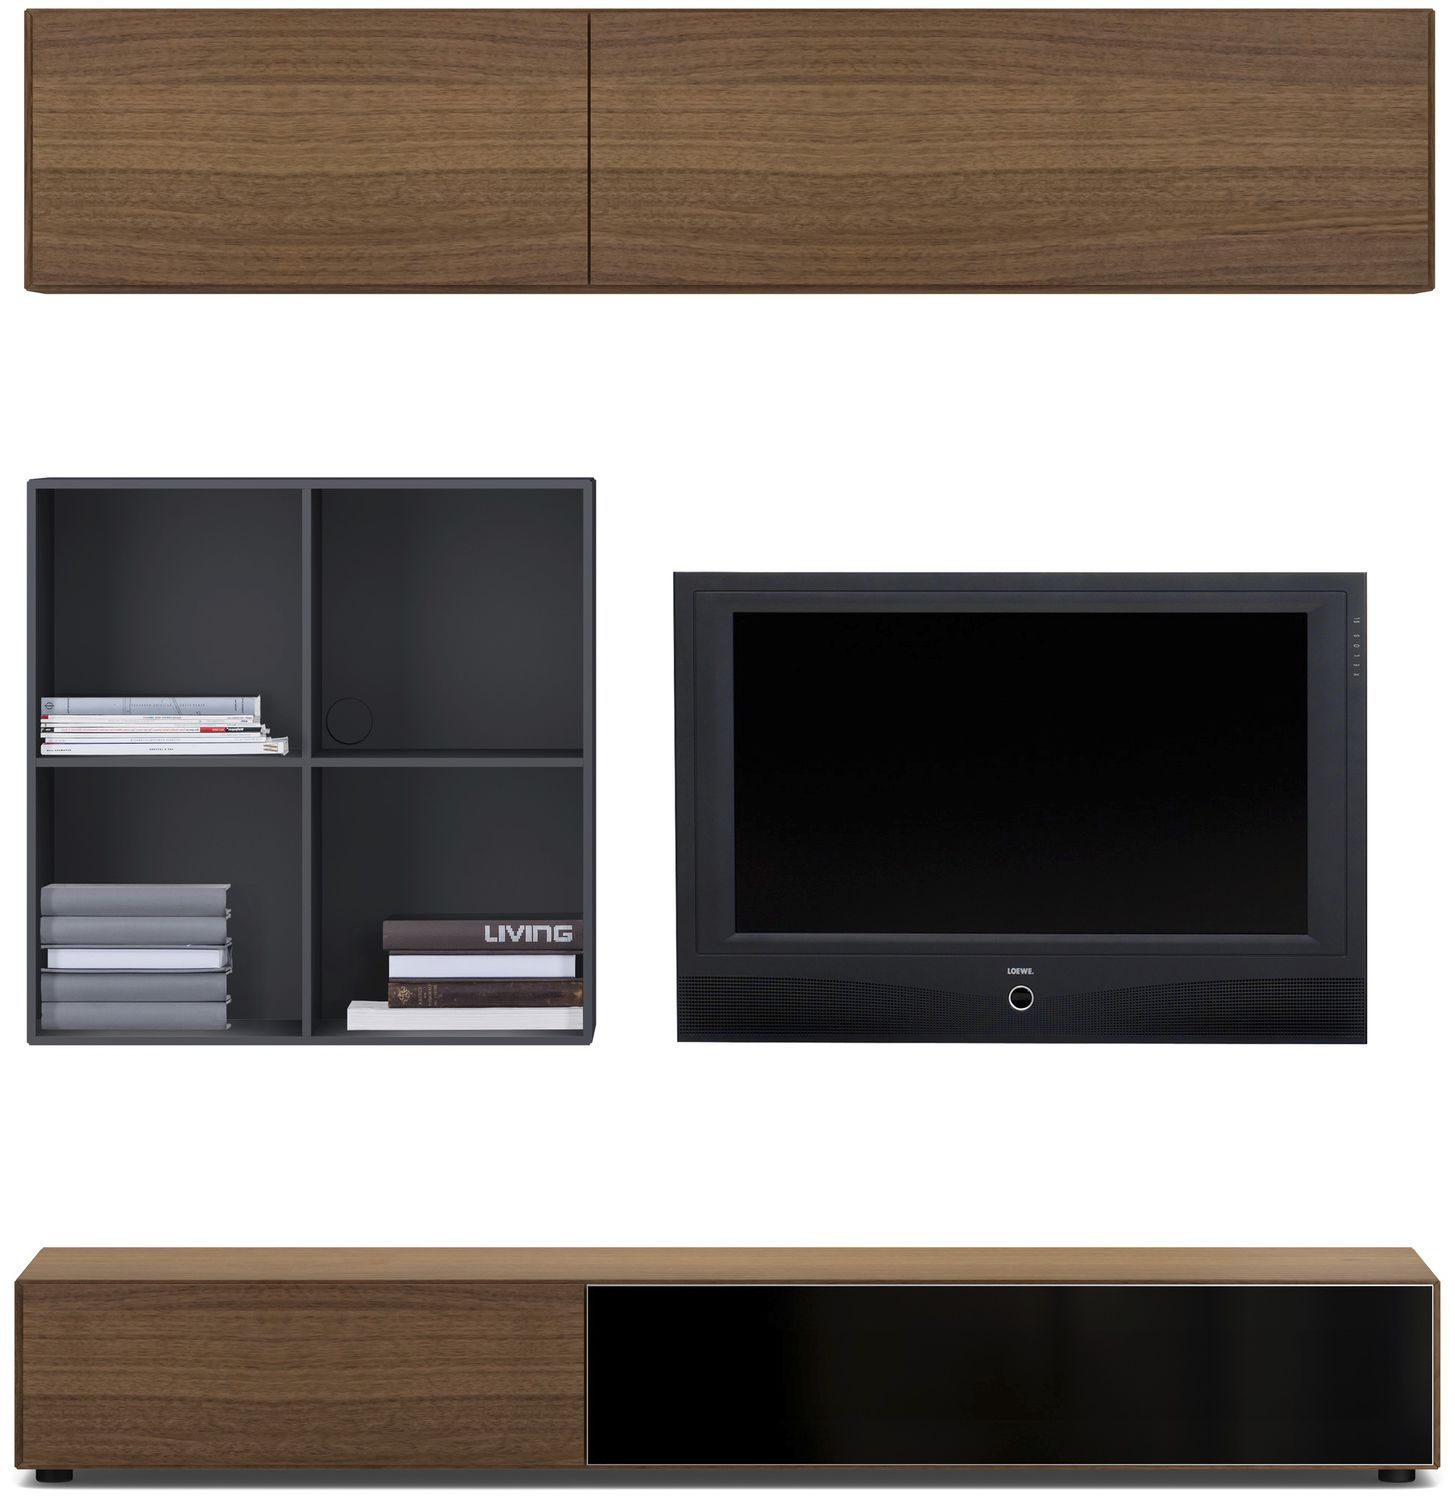 contemporary tv wall unit / lacquered wood / glass / mdf - lugano